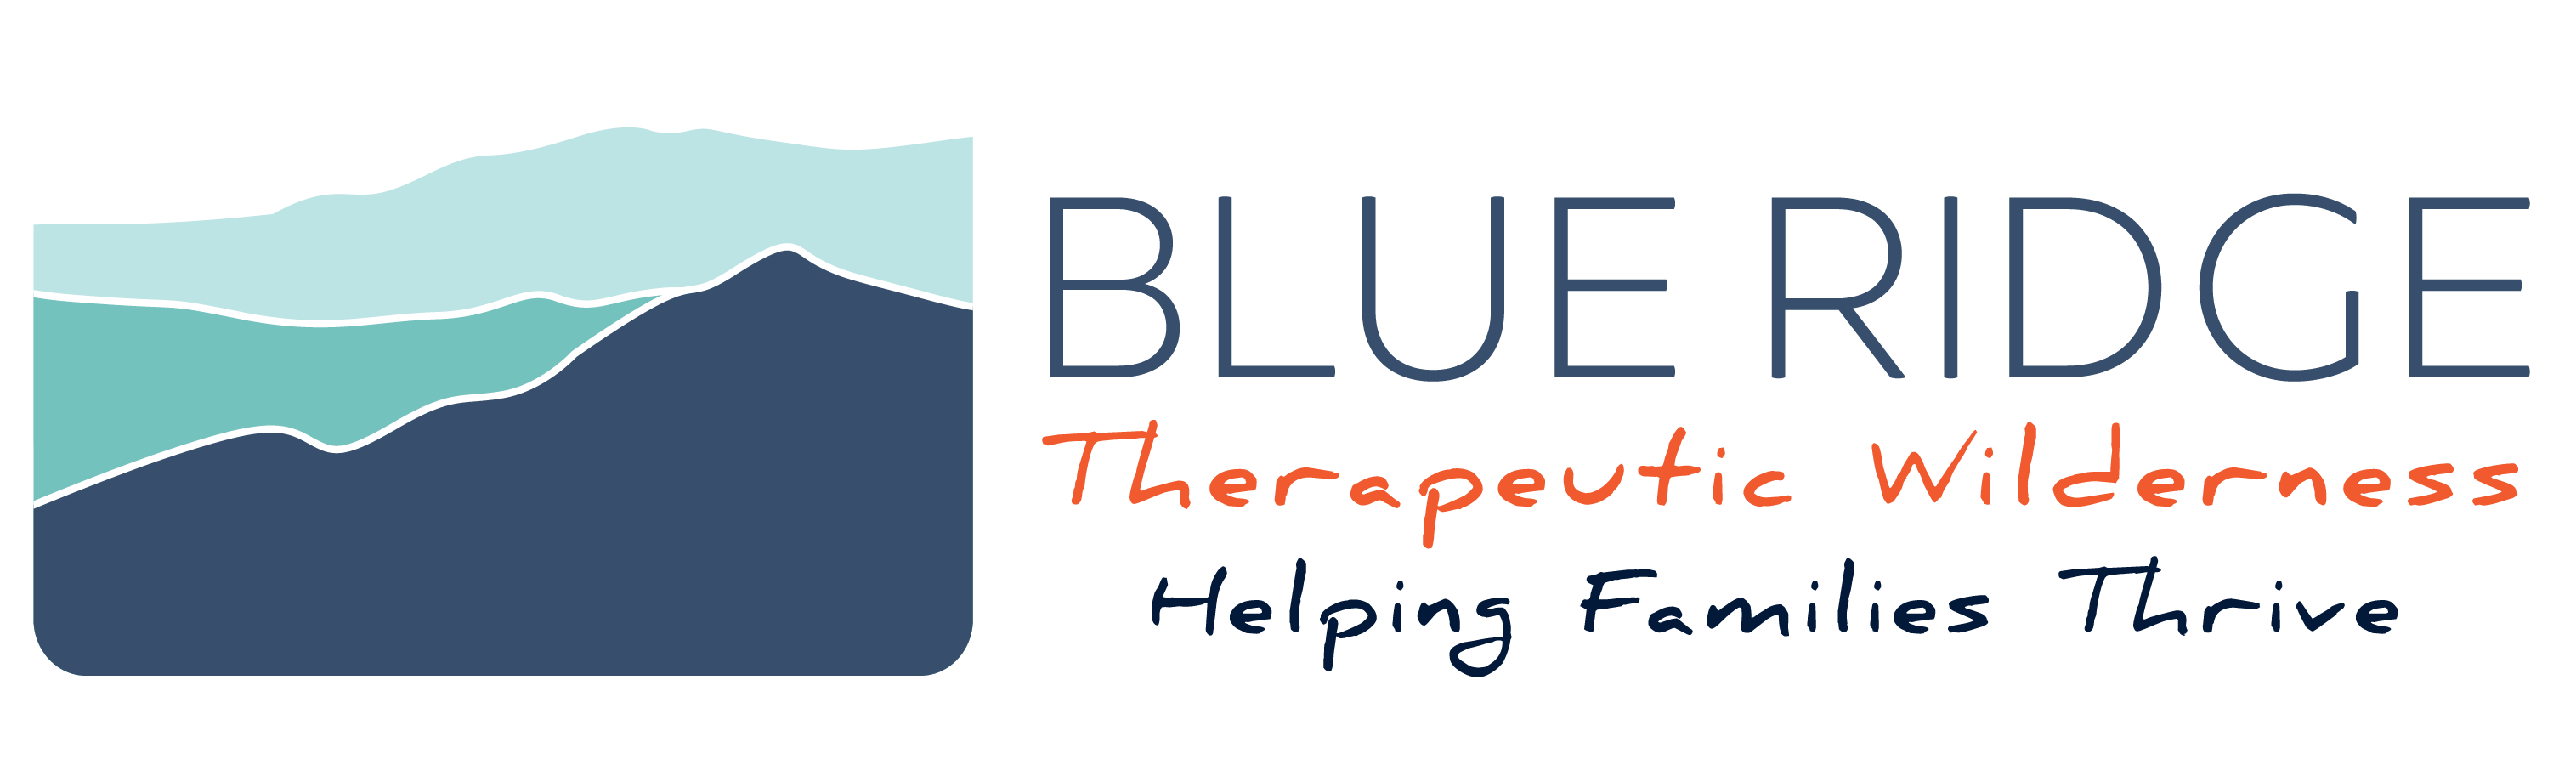 Blue Ridge Therapeutic Wilderness logo with the line helping families thrive.